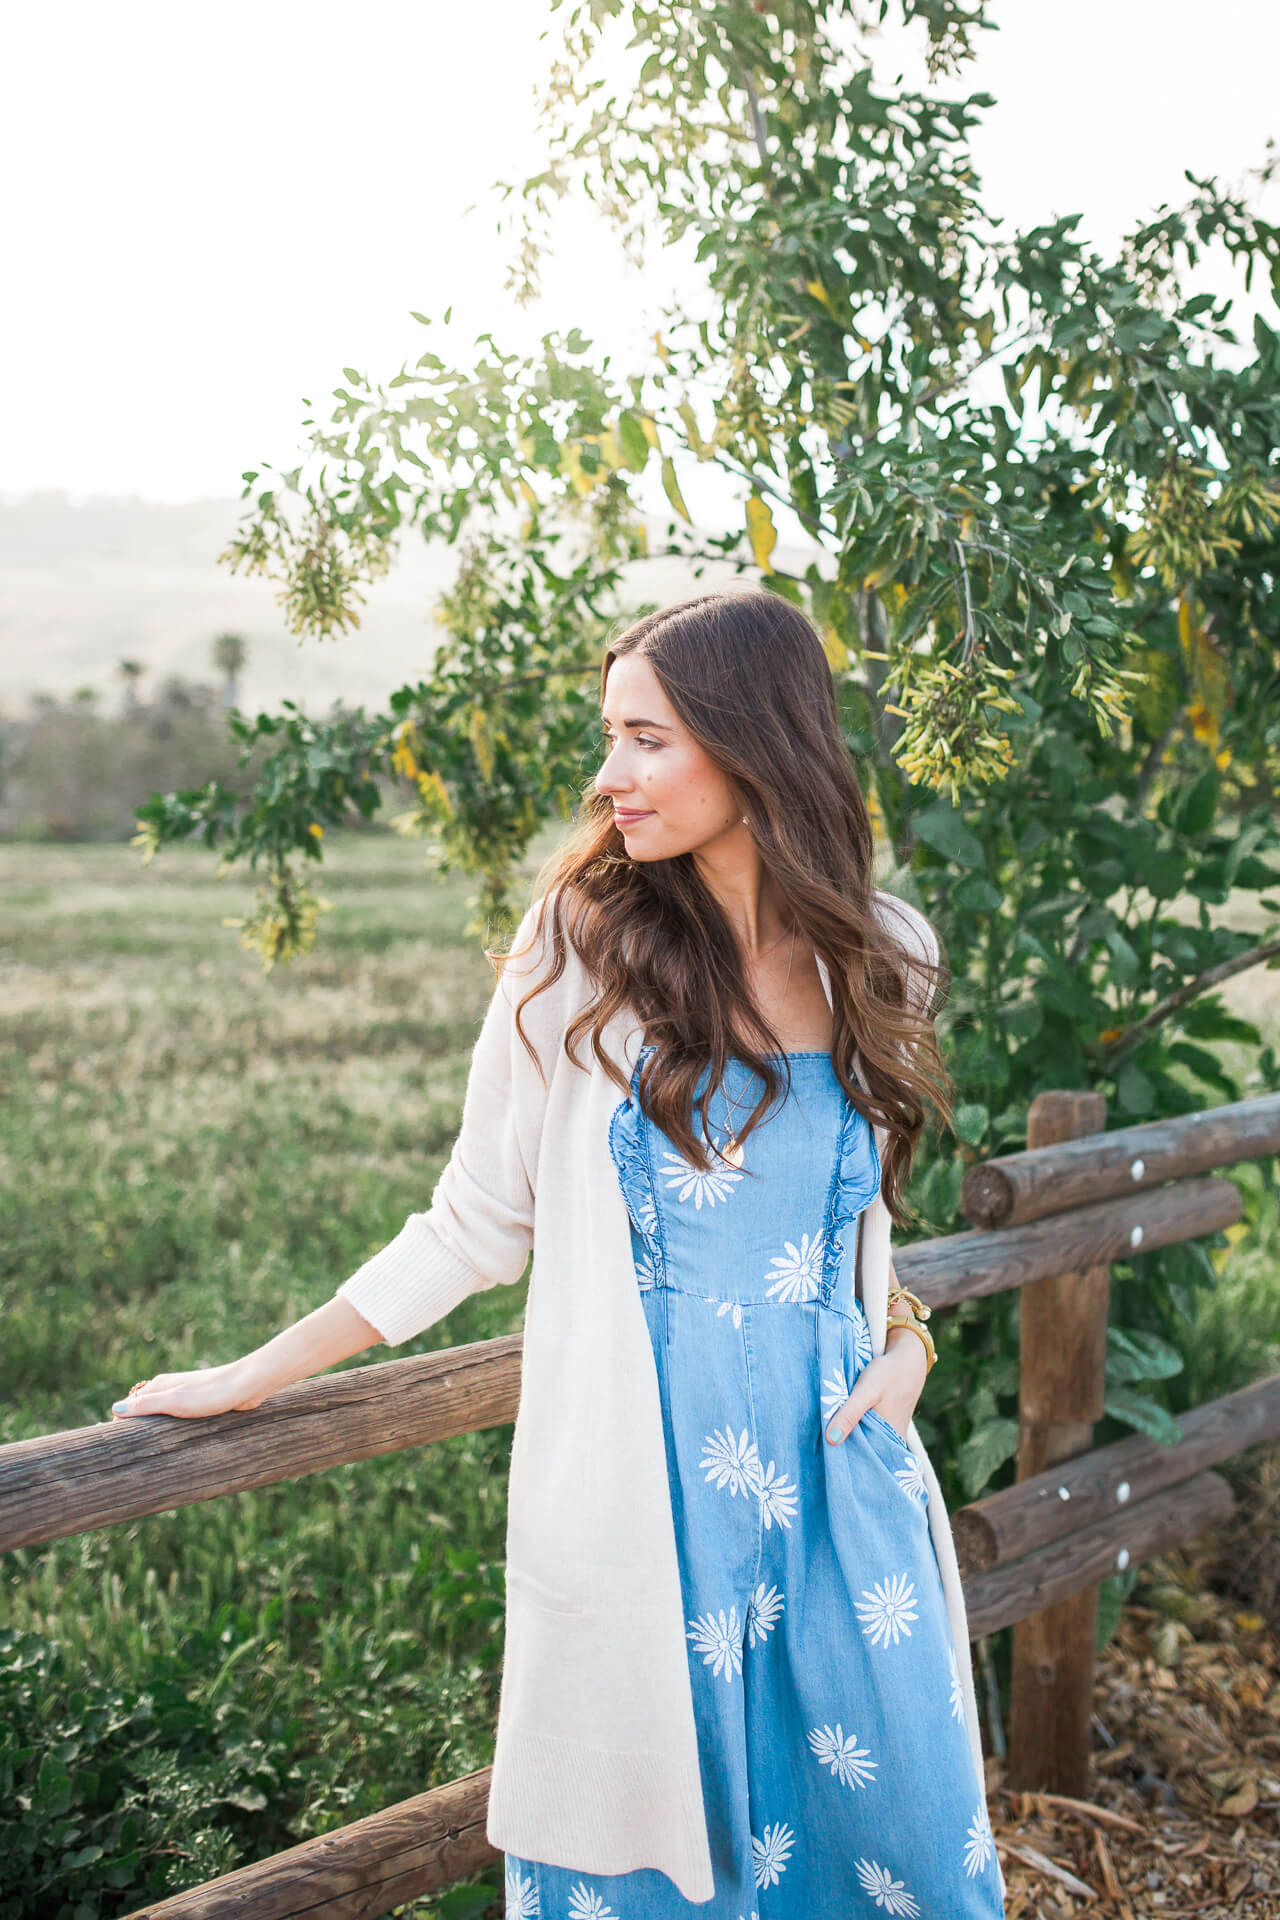 spring outfit inspiration with a jumpsuit and long cardigan sweater